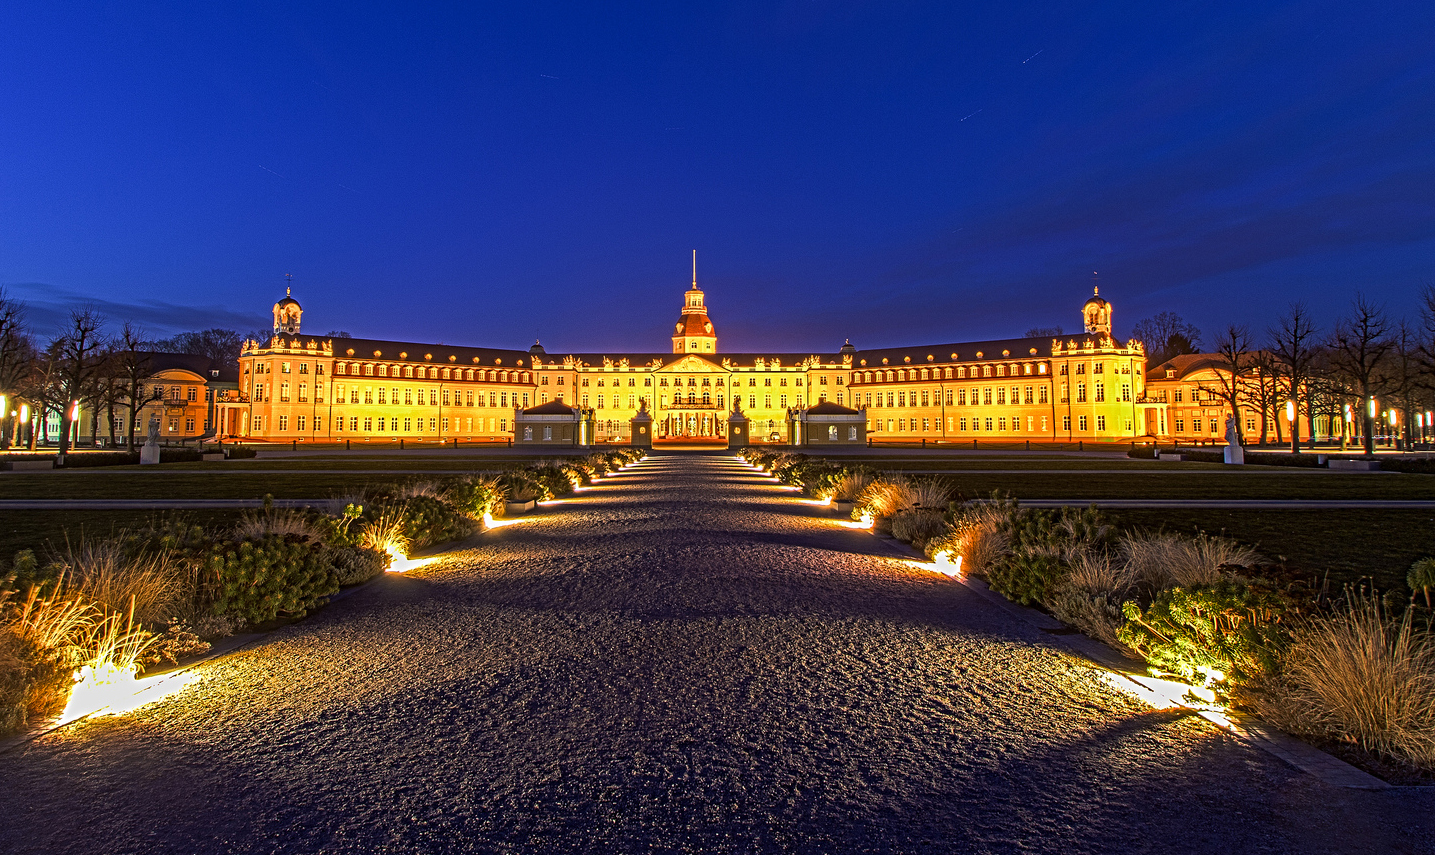 Schloss Karlsruhe. Photo Credit: Keiko S. (flickr @craxler)